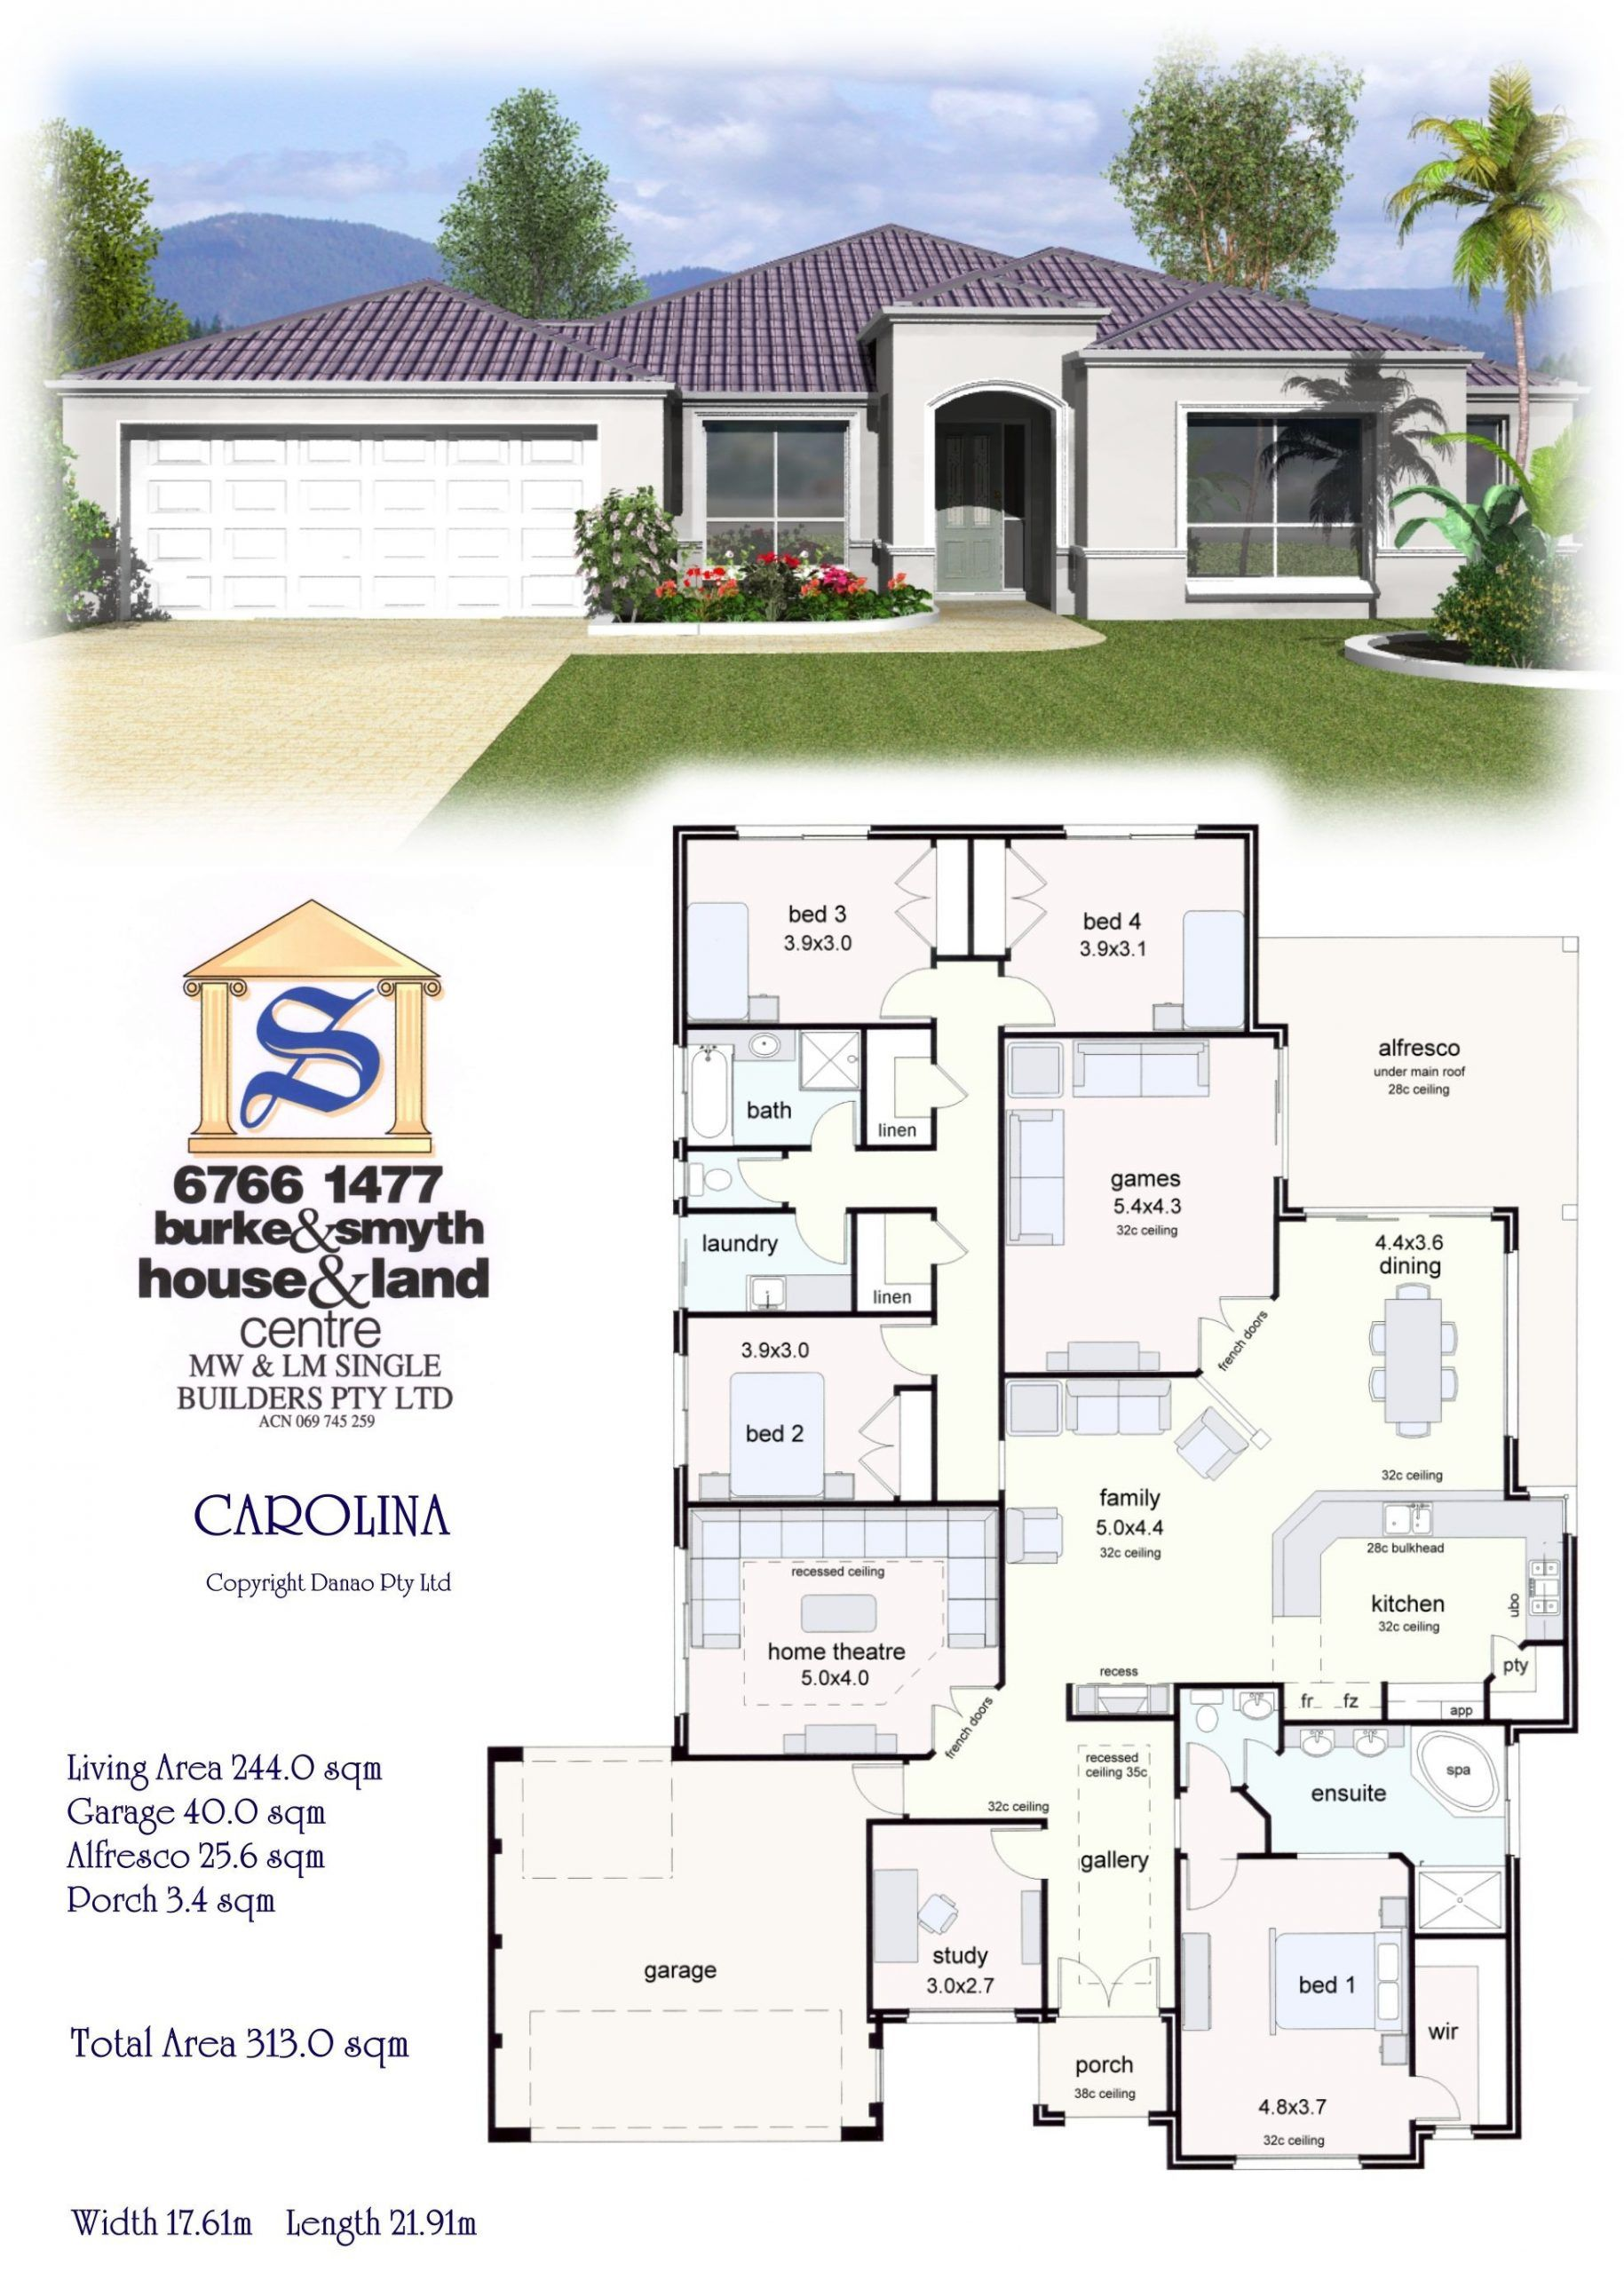 Low Income House Plans 2021 Dream House Plans House Plan Gallery Model House Plan